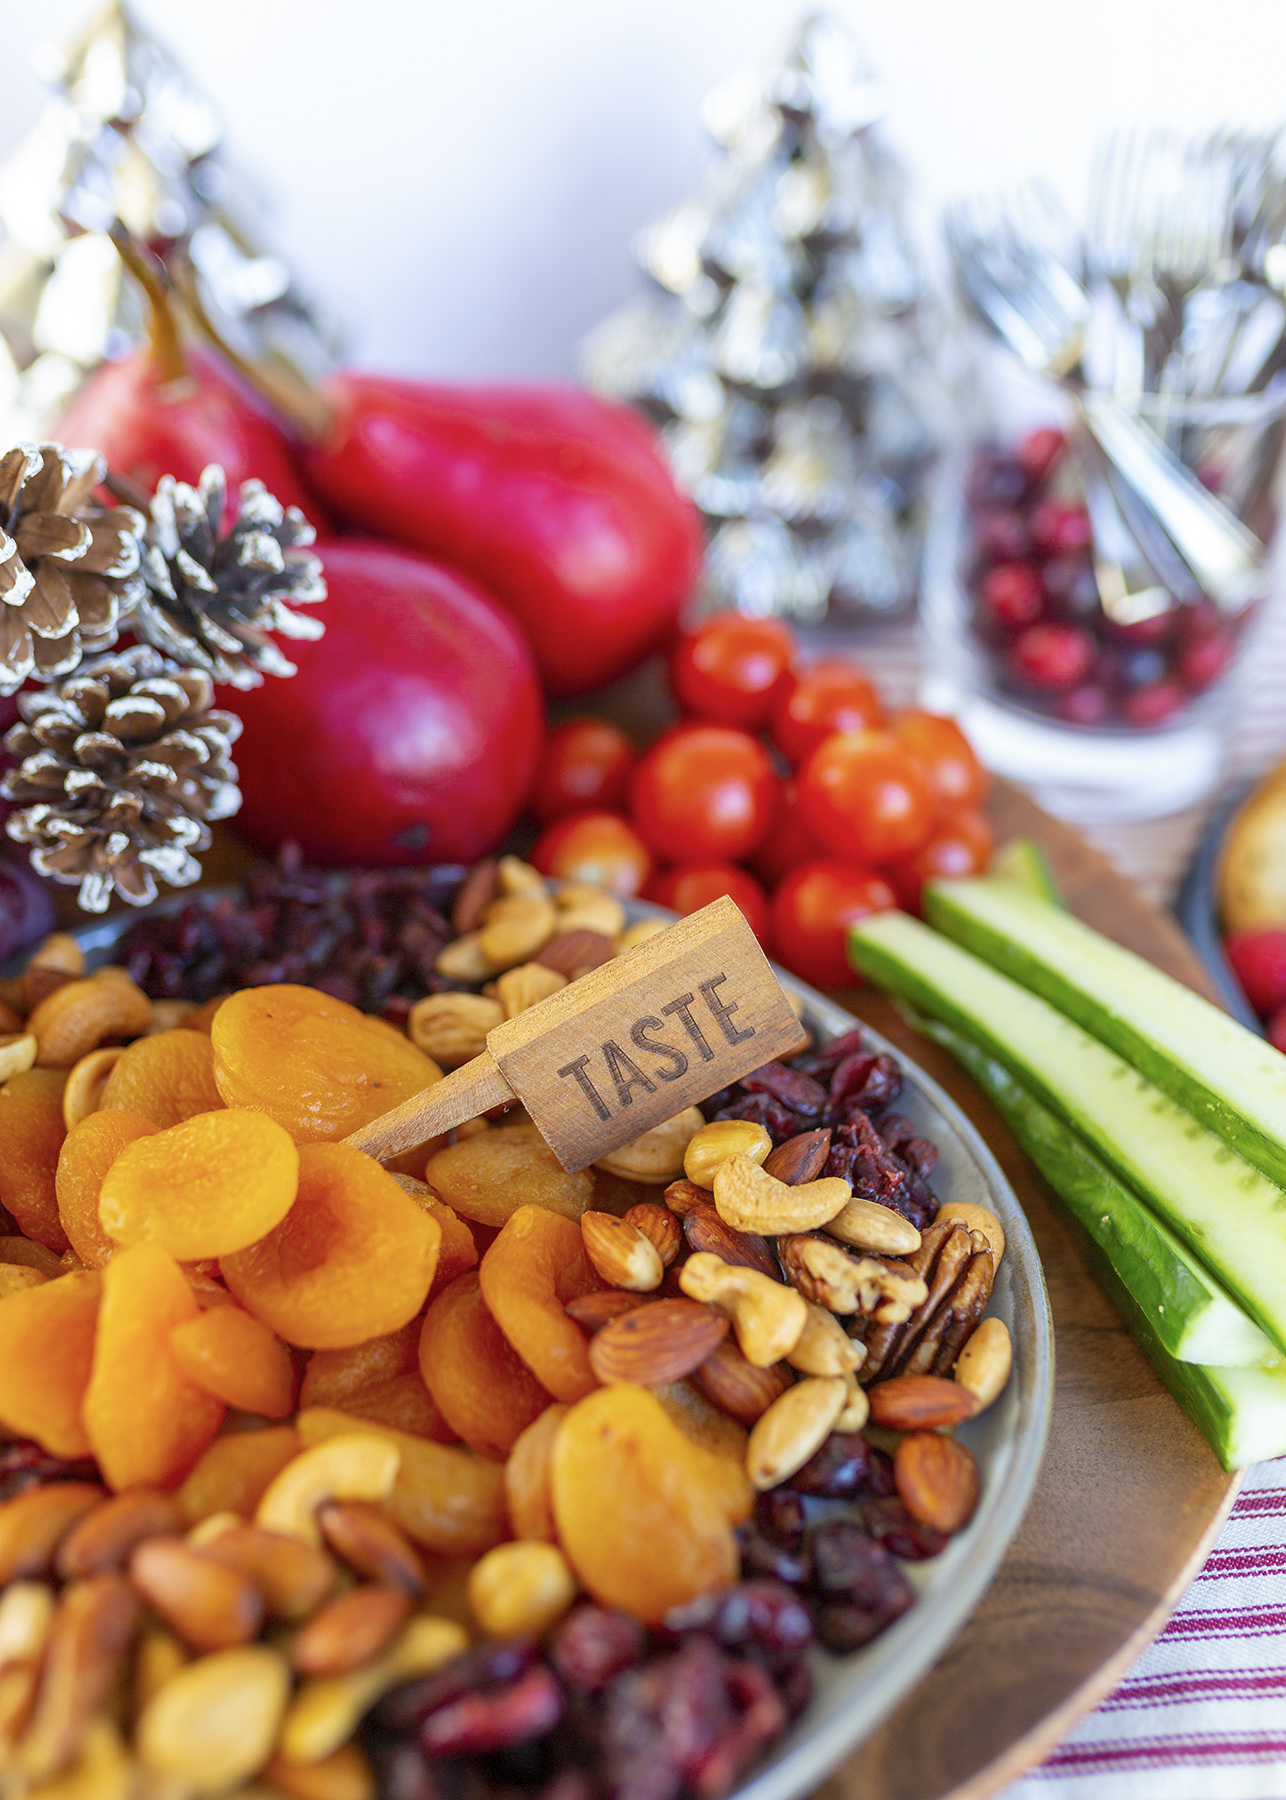 Nuts, dried fruits and vegetables set up in snacking station/ grazing table